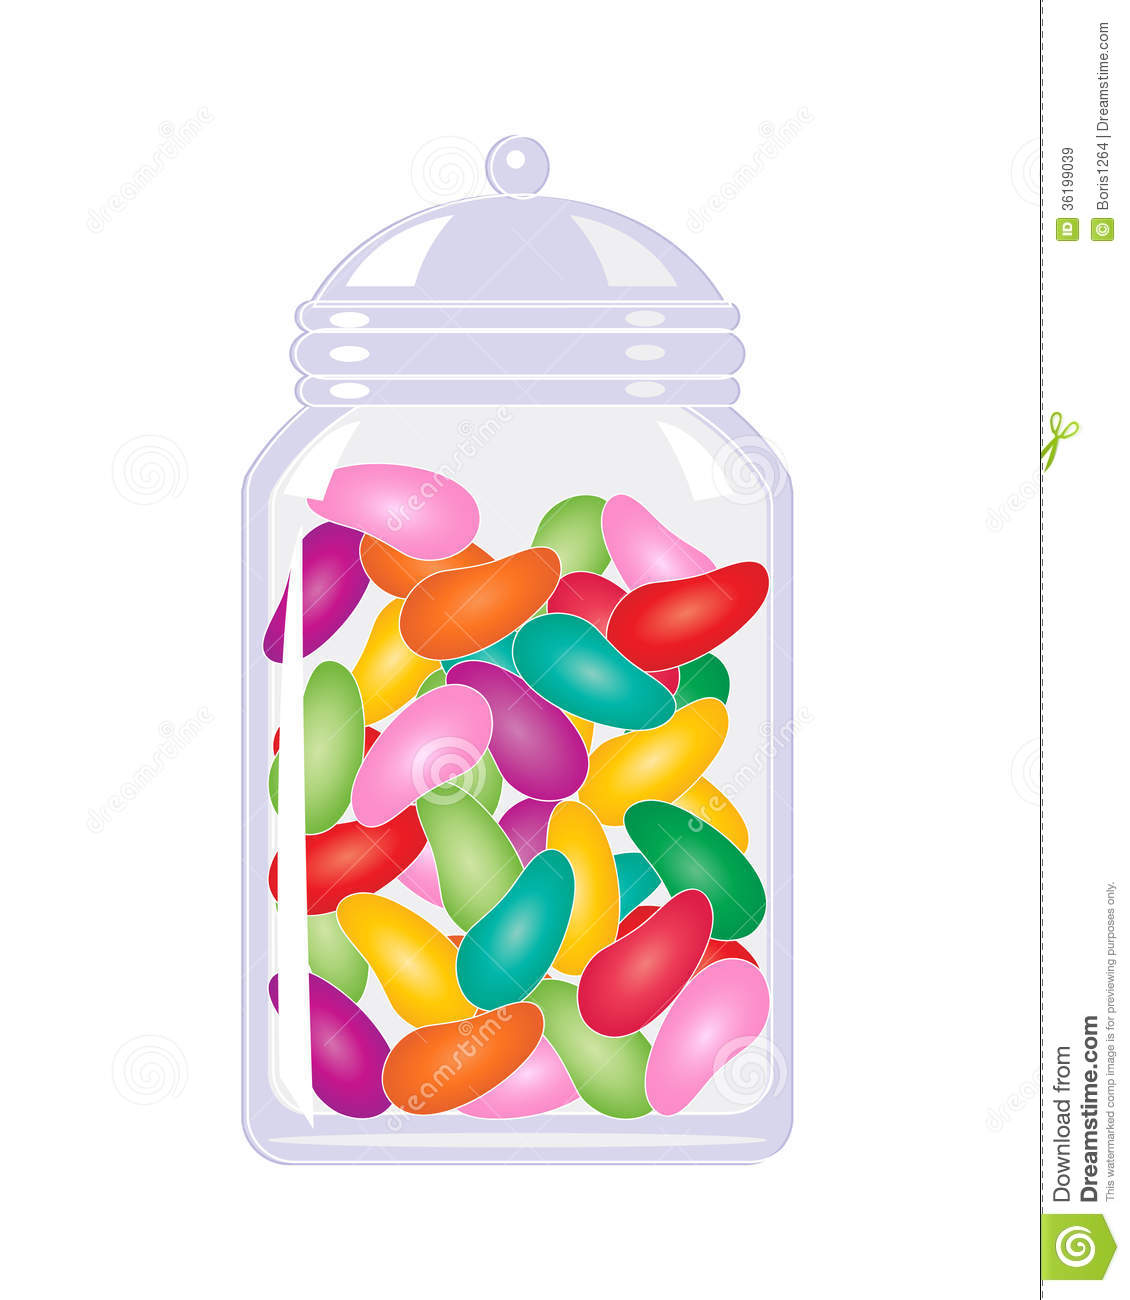 Jelly Bean clipart candy Candy Download Clip Jar Candy